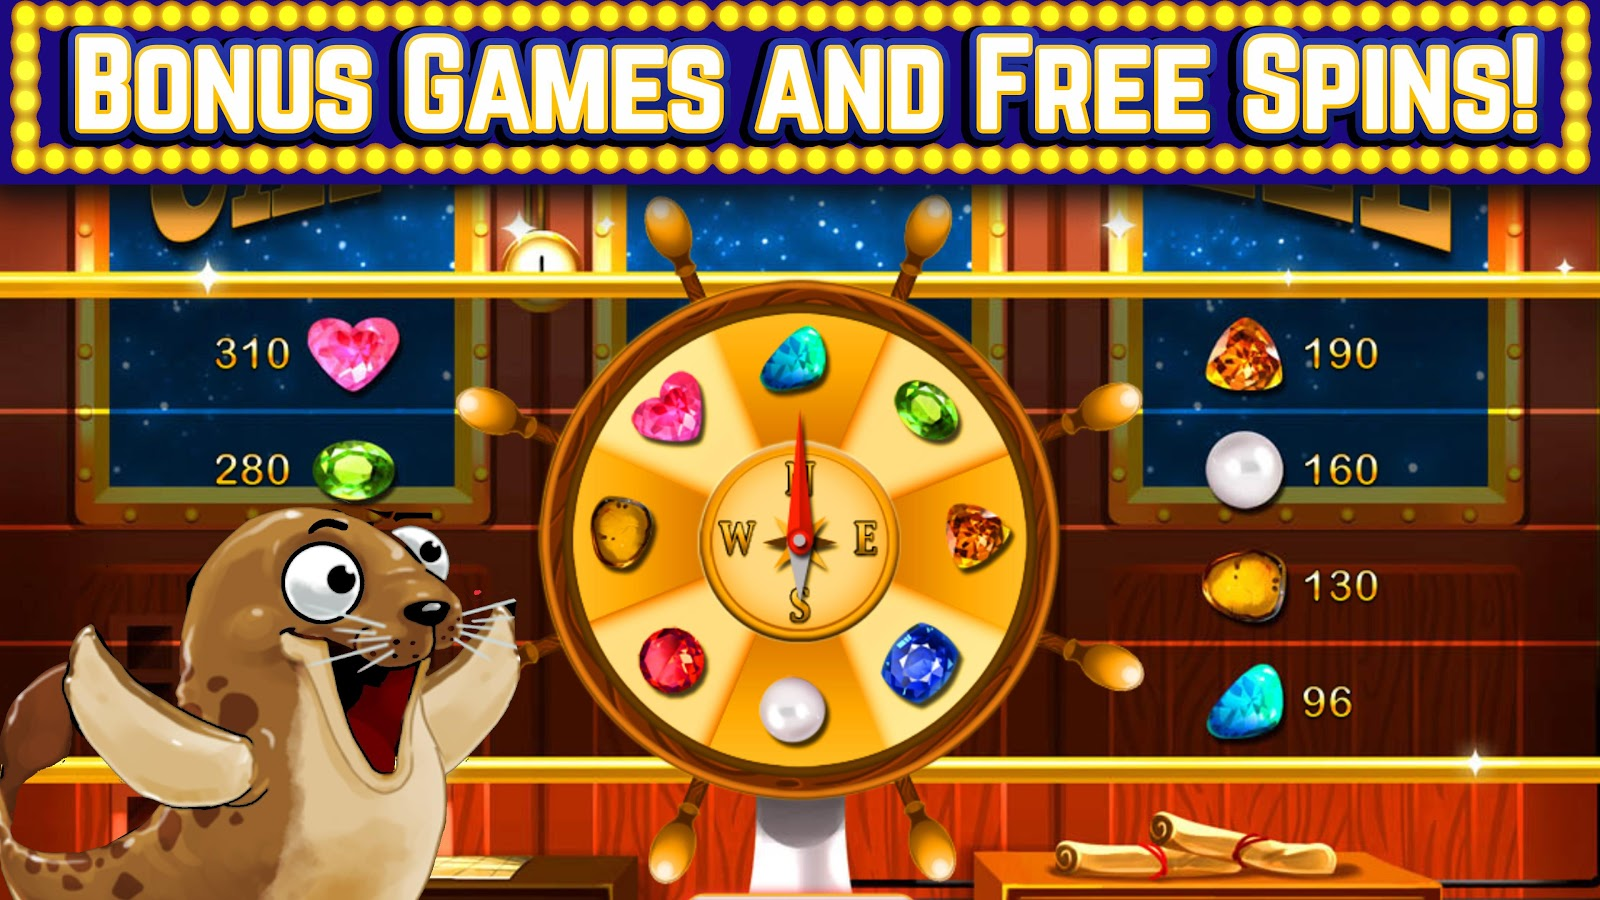 royal vegas online casino download on9 games